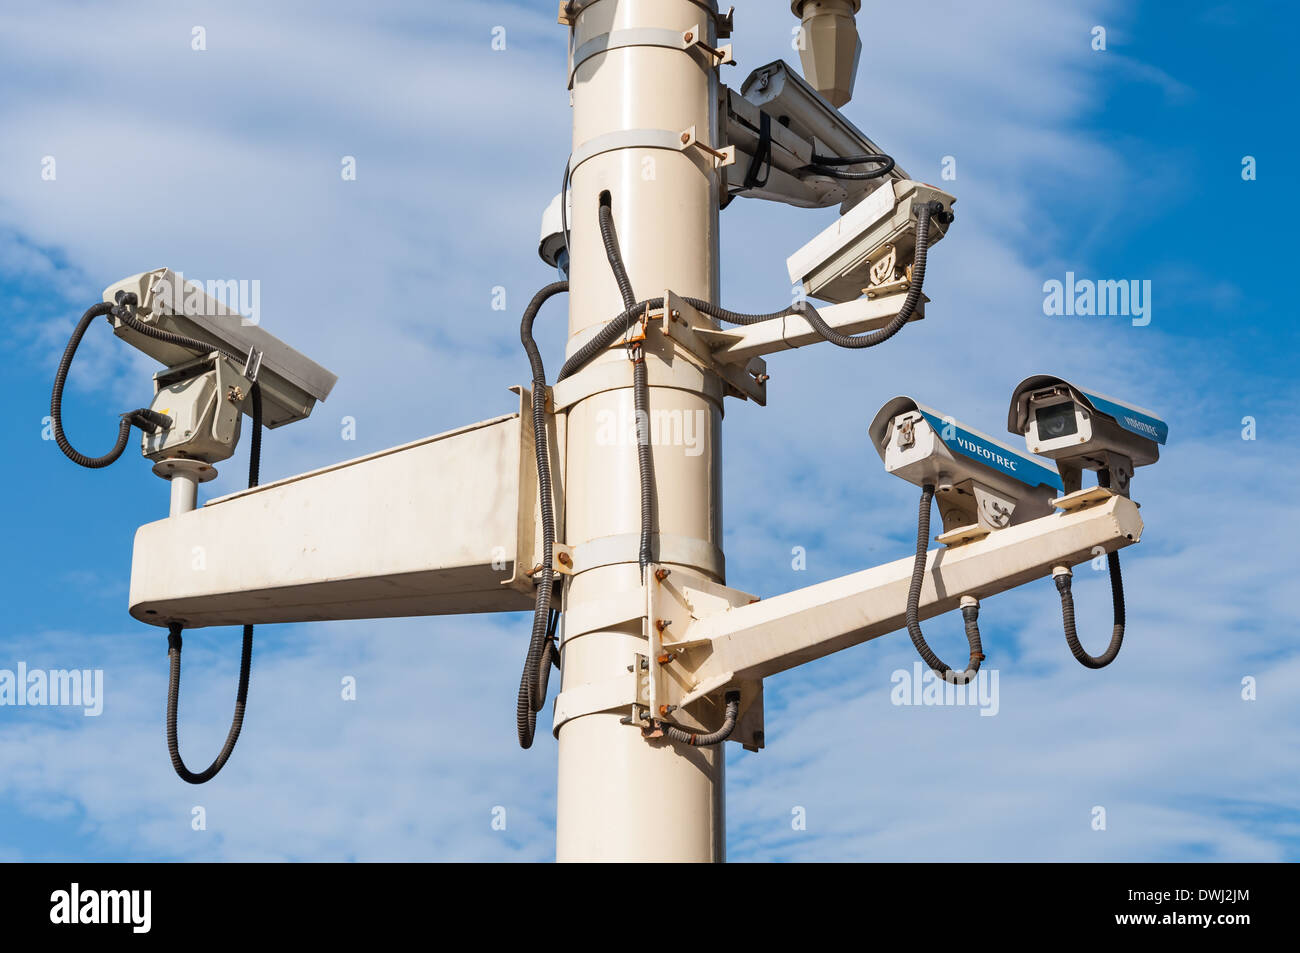 A system of security cameras keep an eye on the public. - Stock Image